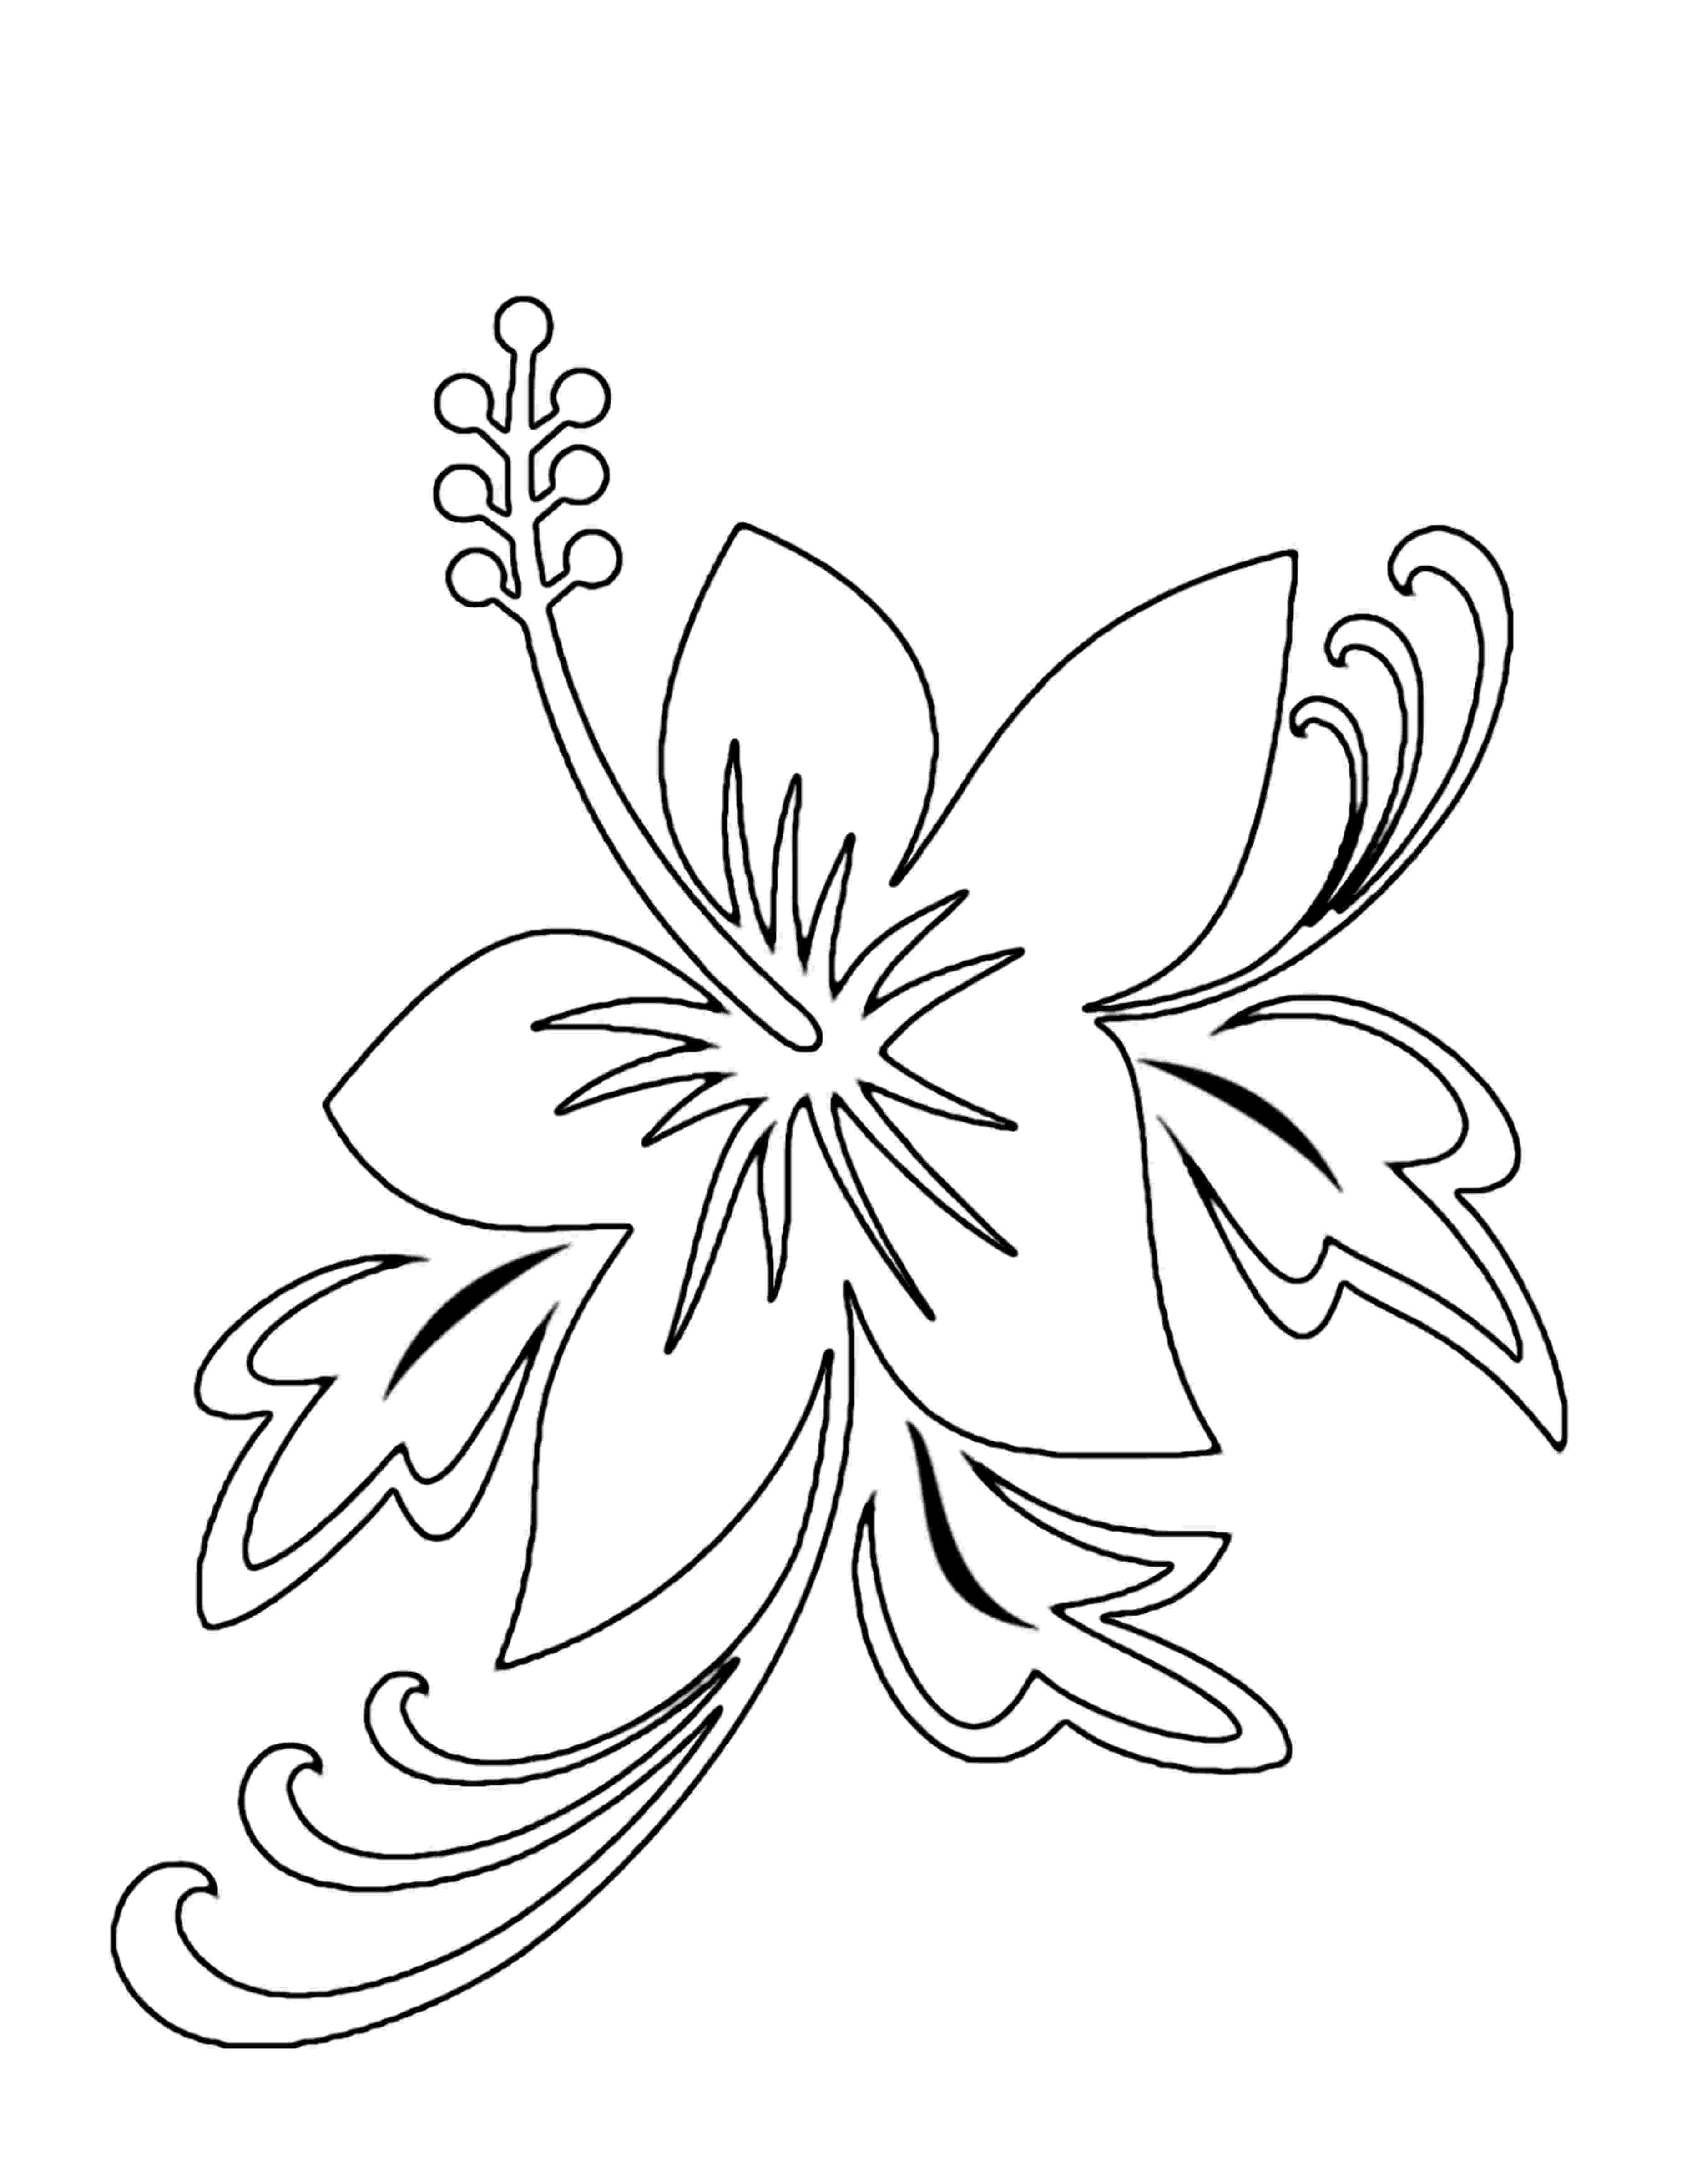 pictures of flowers to print and color free printable flower coloring pages for kids best to and color of pictures print flowers